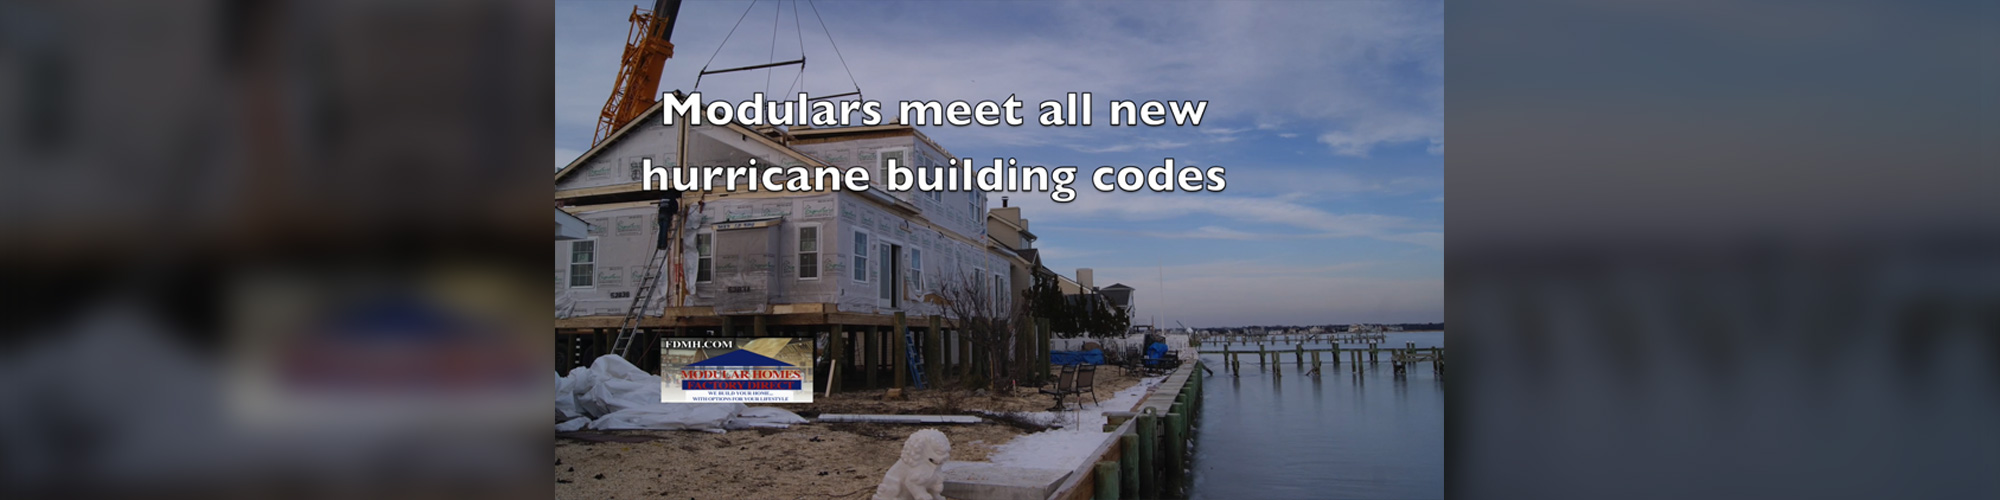 Modular Homes Factory Direct meet all new hurricane building codes